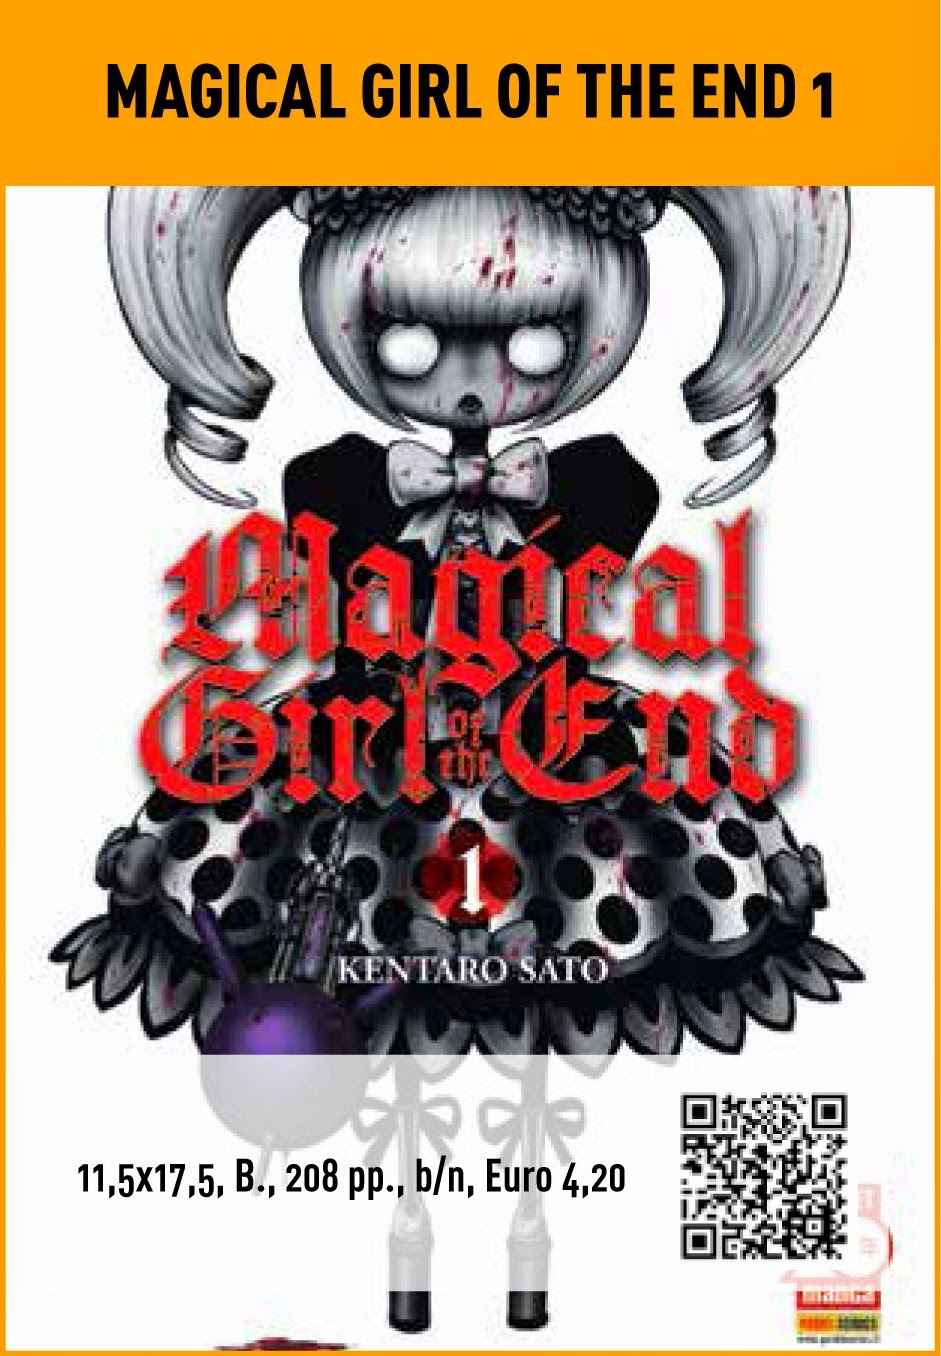 Magical girl of the end #1